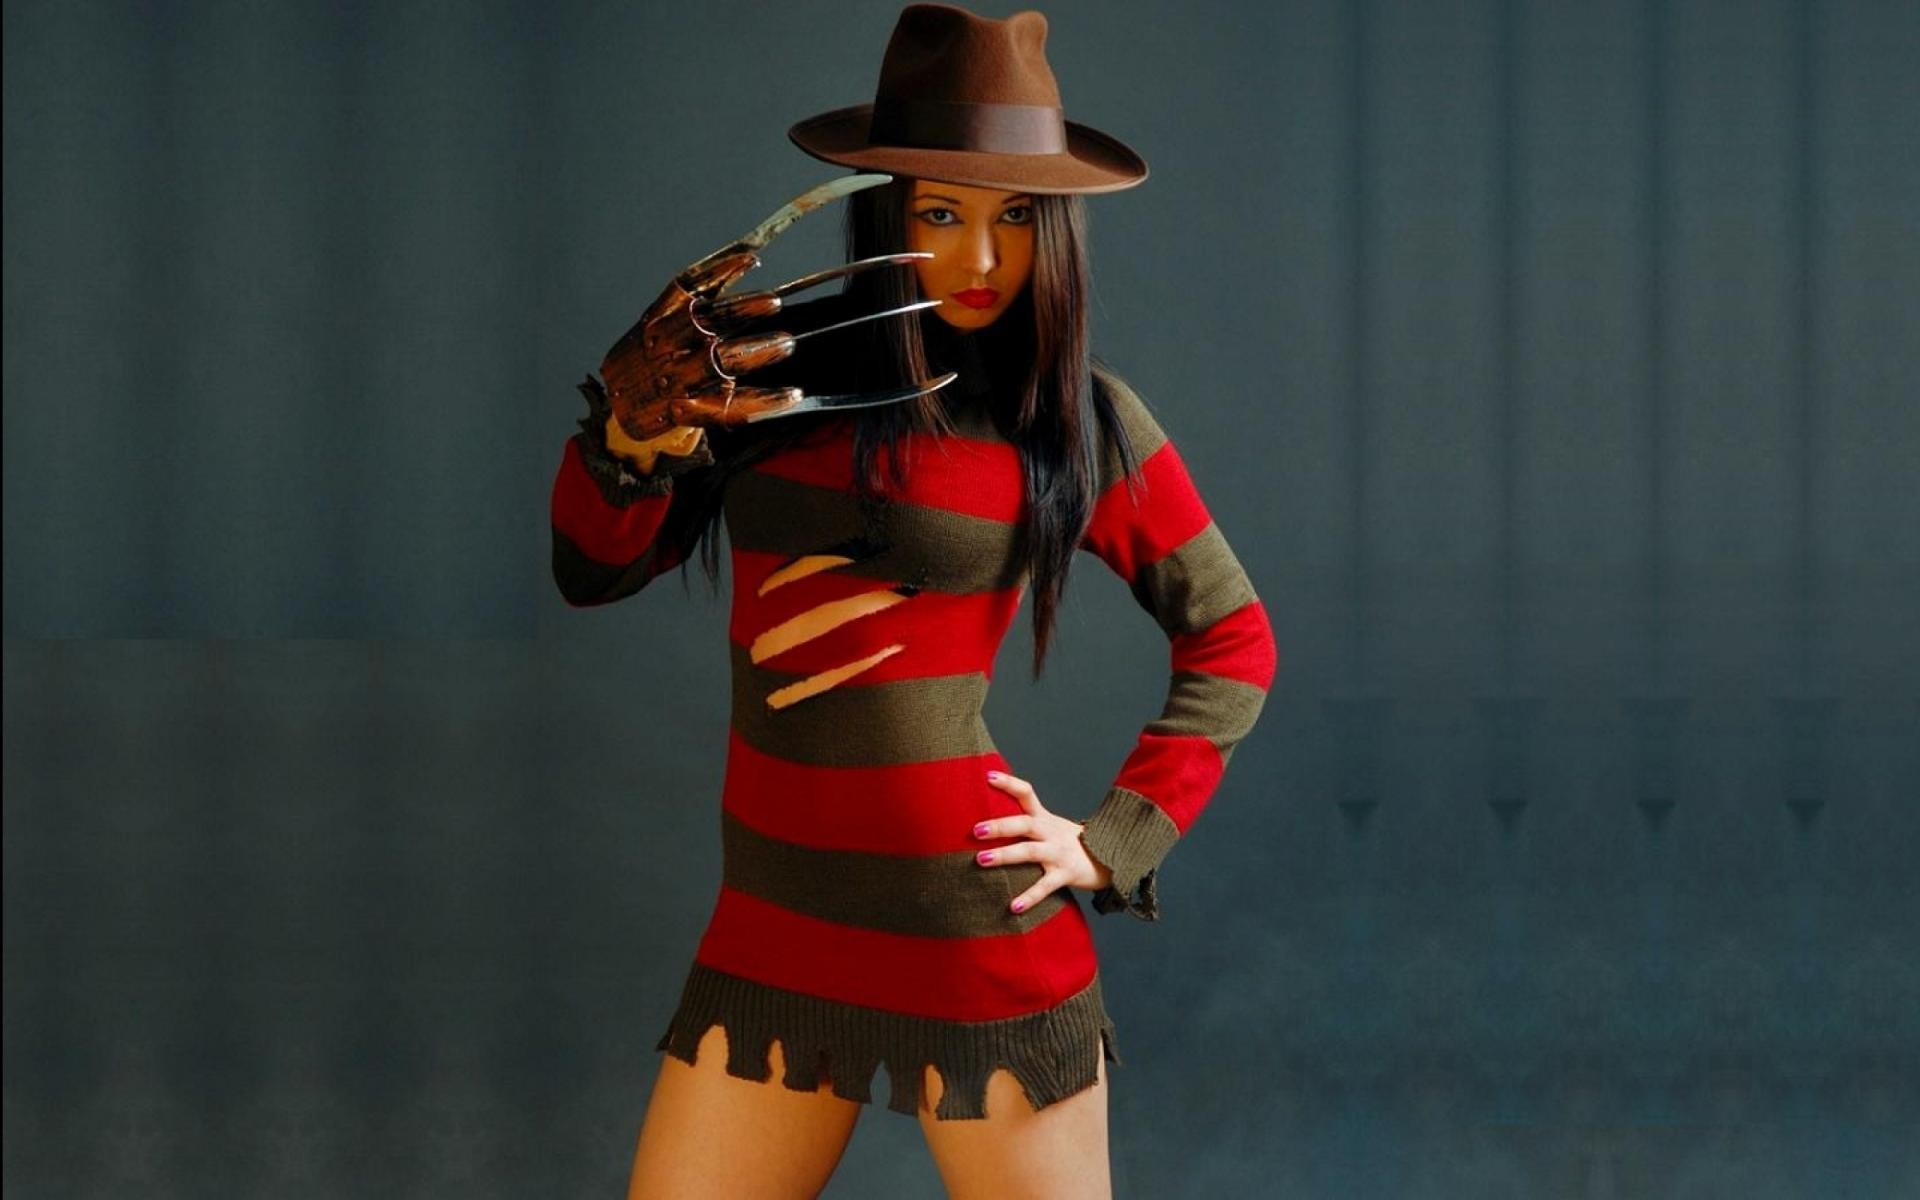 Freddy Krueger Cosplay - 1920x1200